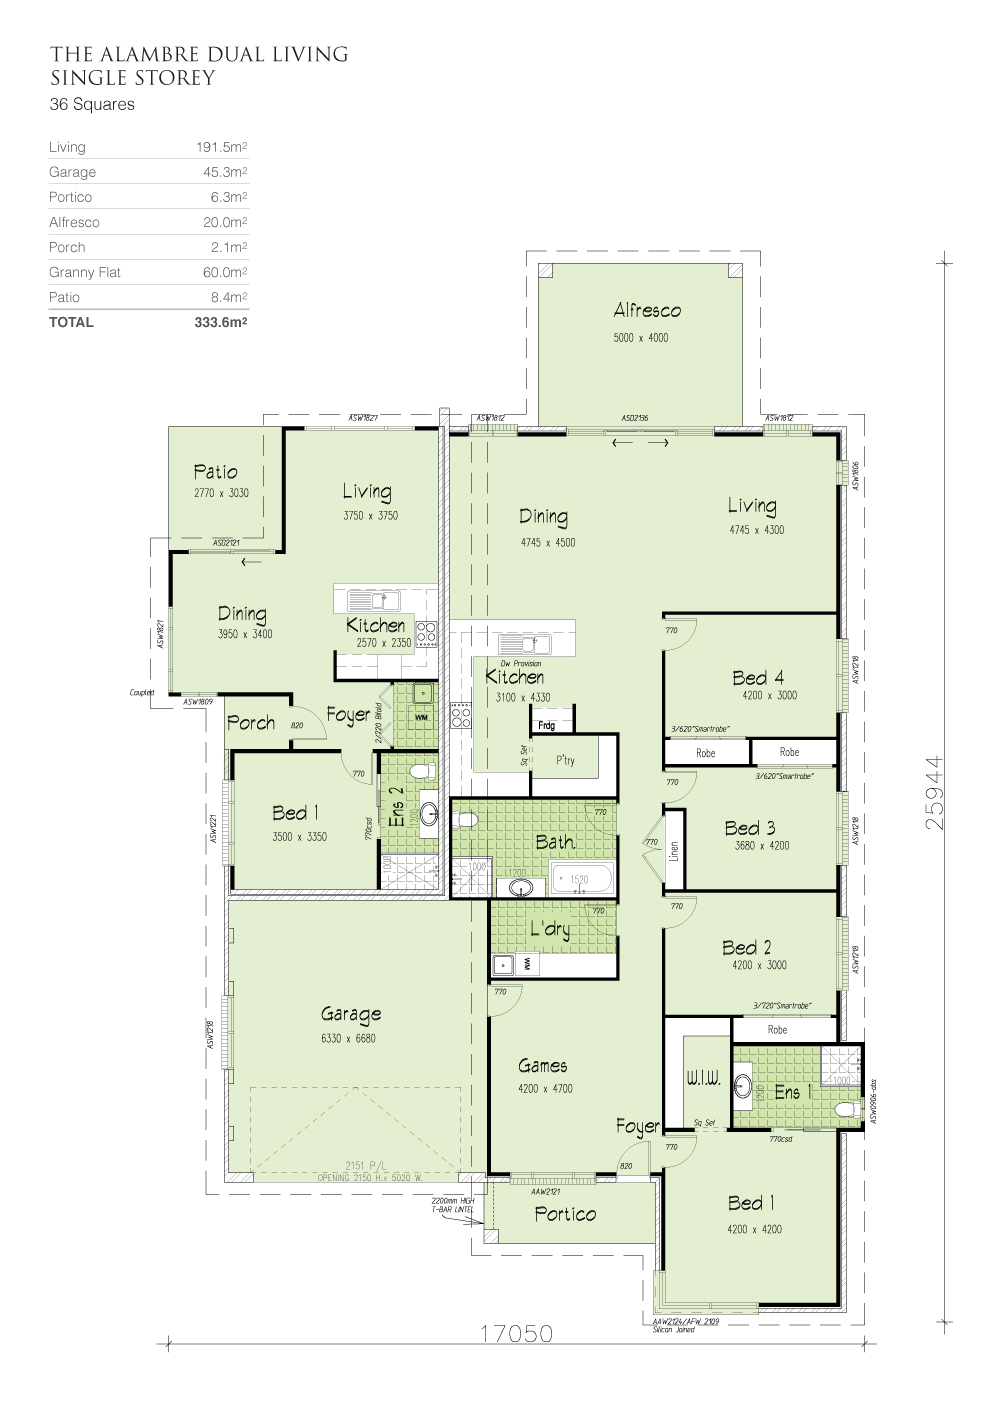 Alambre Dual Living, Home Design, Tullipan Homes